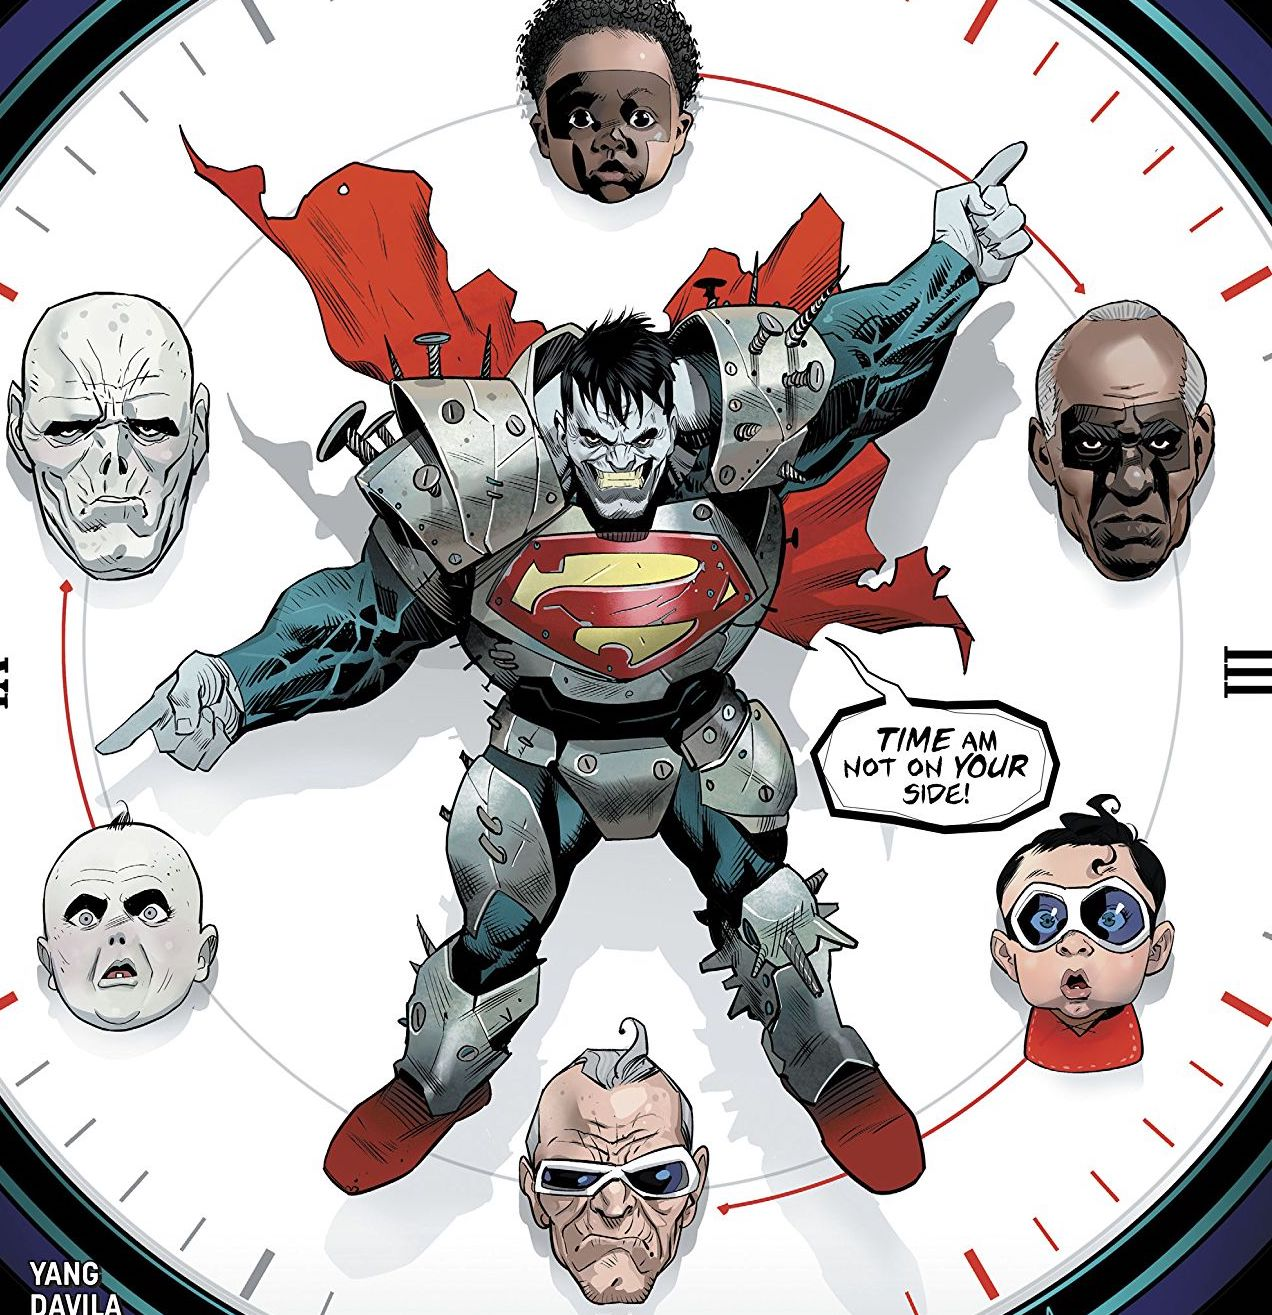 The Terrifics continue to fight Bizarro, who has broken time! Can they escape the time loop they're trapped in?